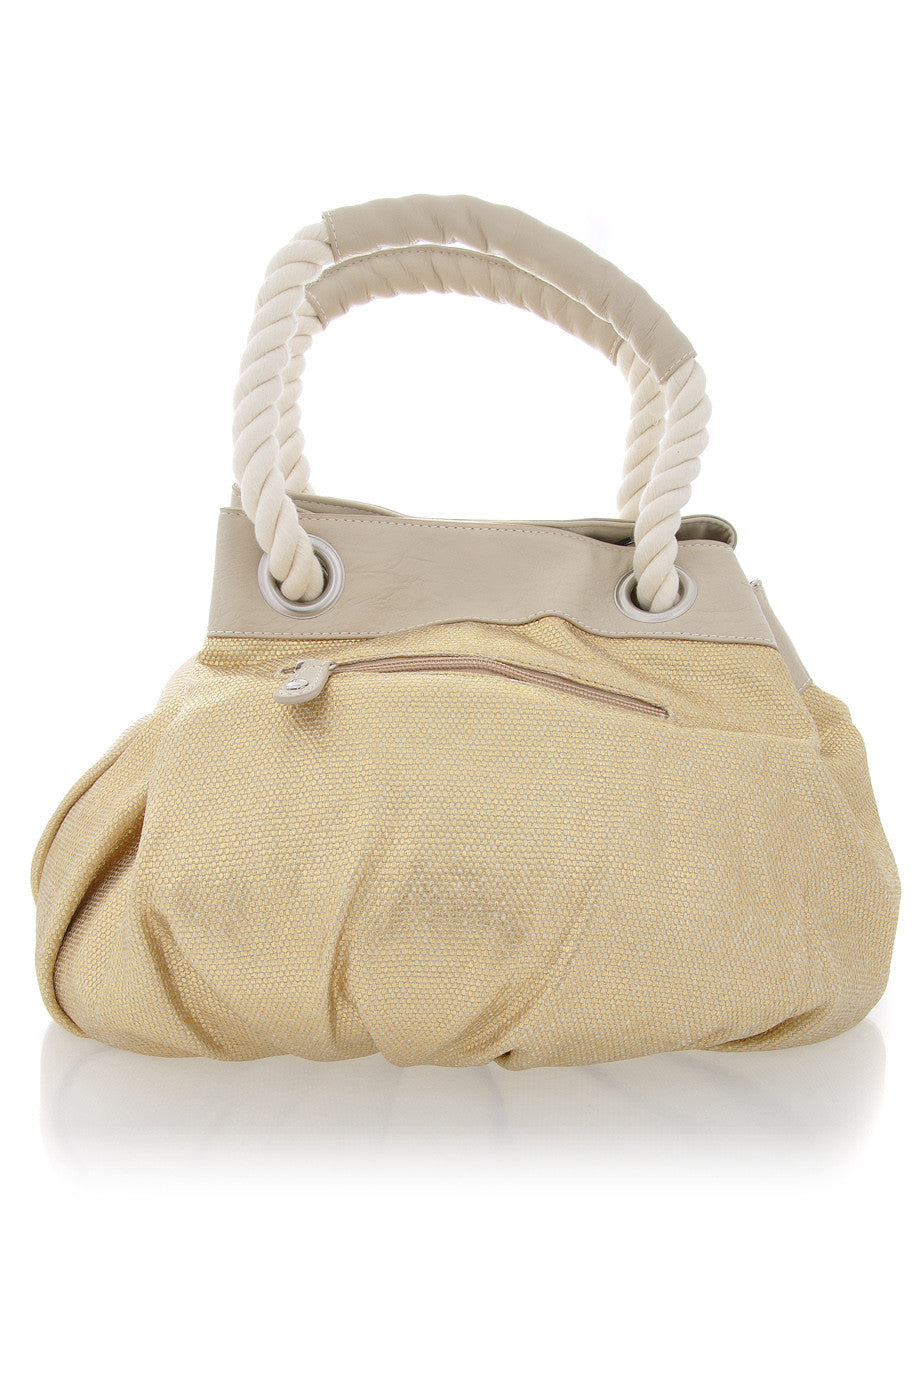 MODALU SARDINIA Gold Shoulder Bag – PRET-A-BEAUTE.COM 91665d7ce9e78